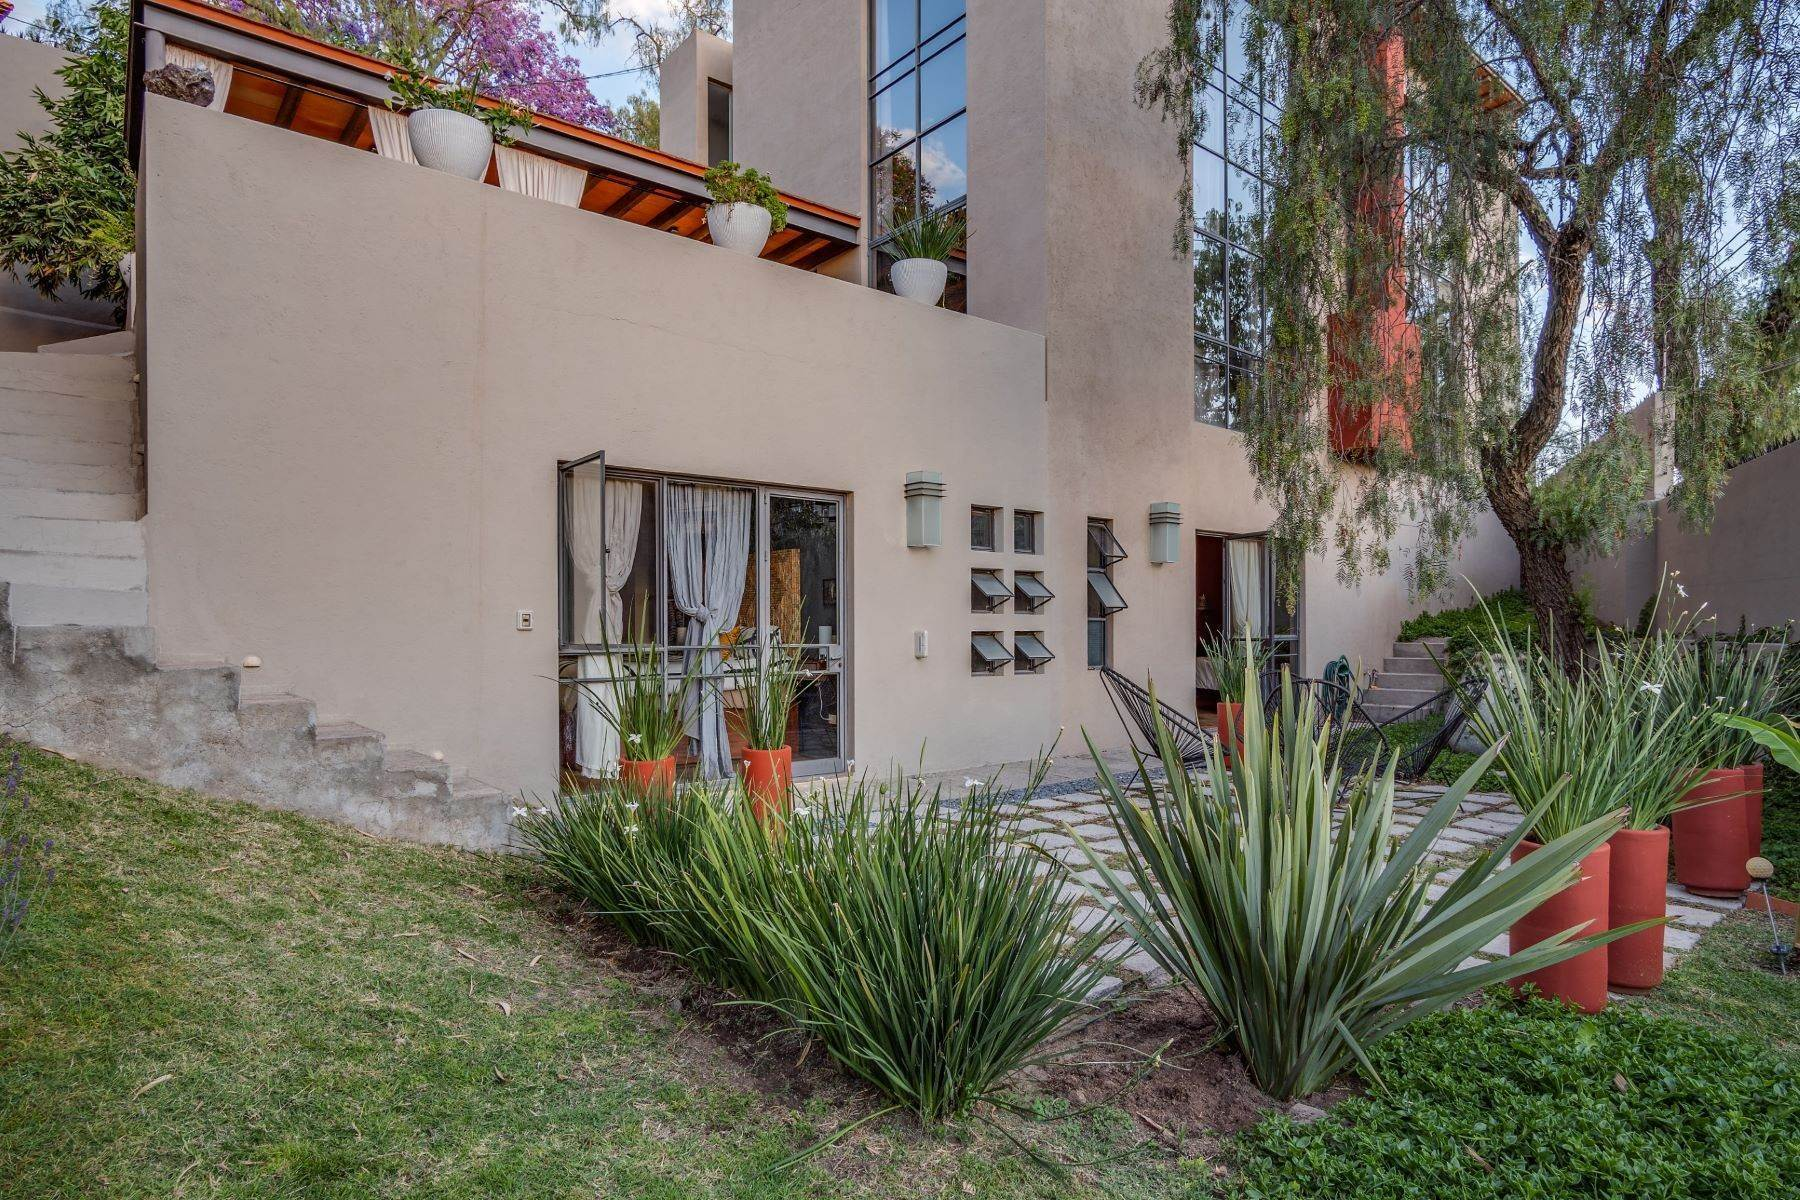 Property for Sale at Casa Faroles Faroles 1 San Miguel De Allende, Guanajuato 37740 Mexico